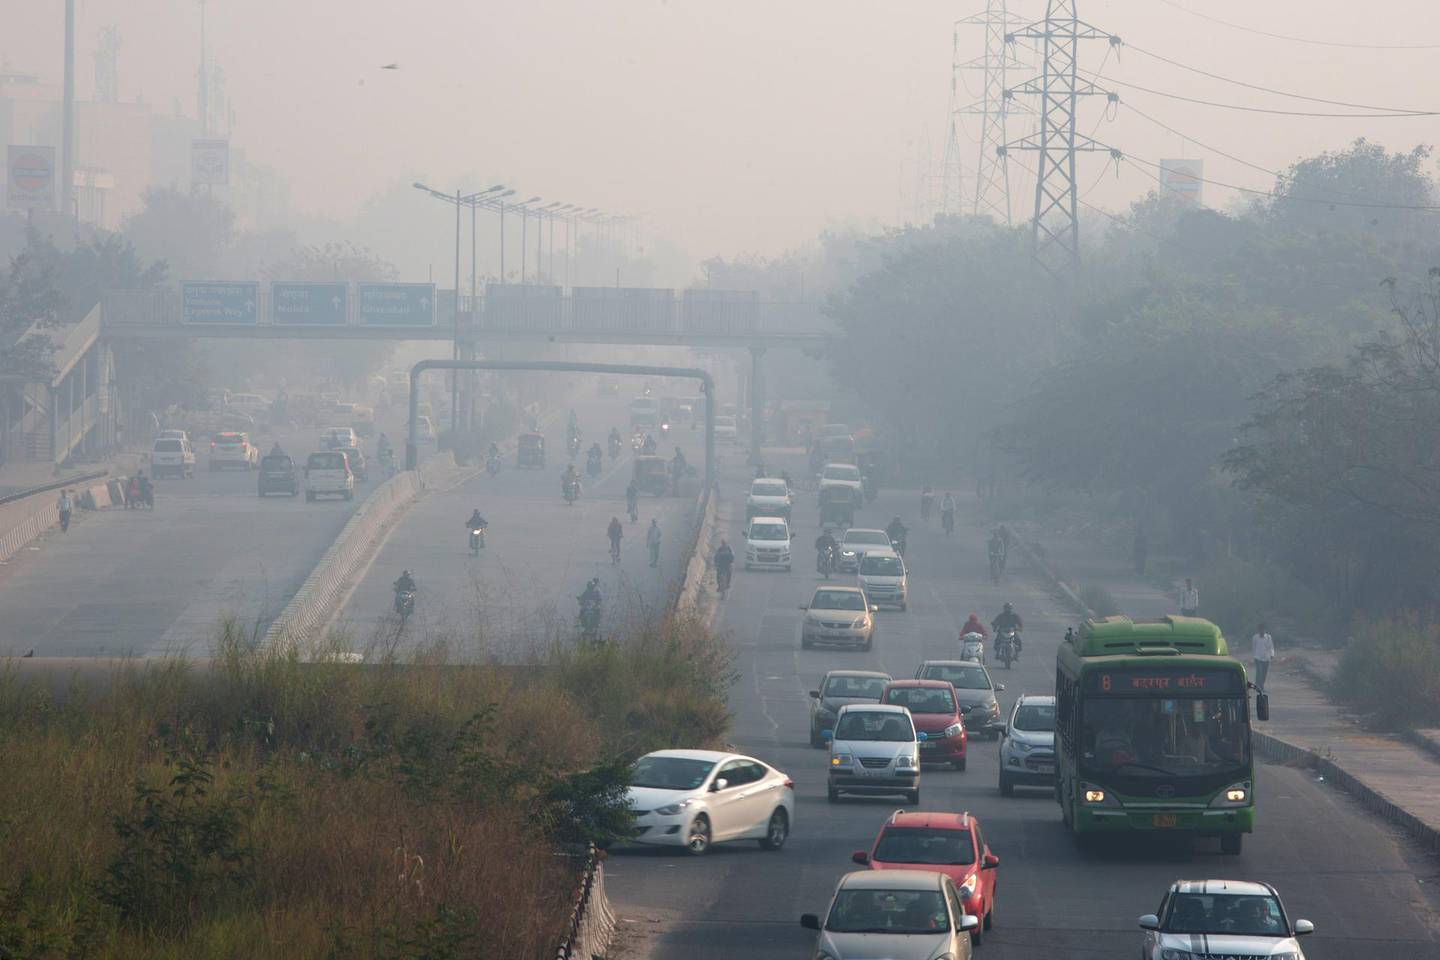 Vehicles travel along a road shrouded in smog in Delhi, India, on Friday, Nov. 9, 2018. Air pollution levels skyrocketed in New Delhi and left India's capital shrouded in toxic smog as millions of Indians set off firecrackers for Diwali, the Hindu festival of lights. Toxic air is estimated to kill more than 1 million Indians each year, according to the nonprofit Health Effects Institute. Photographer: Ruhani Kaur/Bloomberg